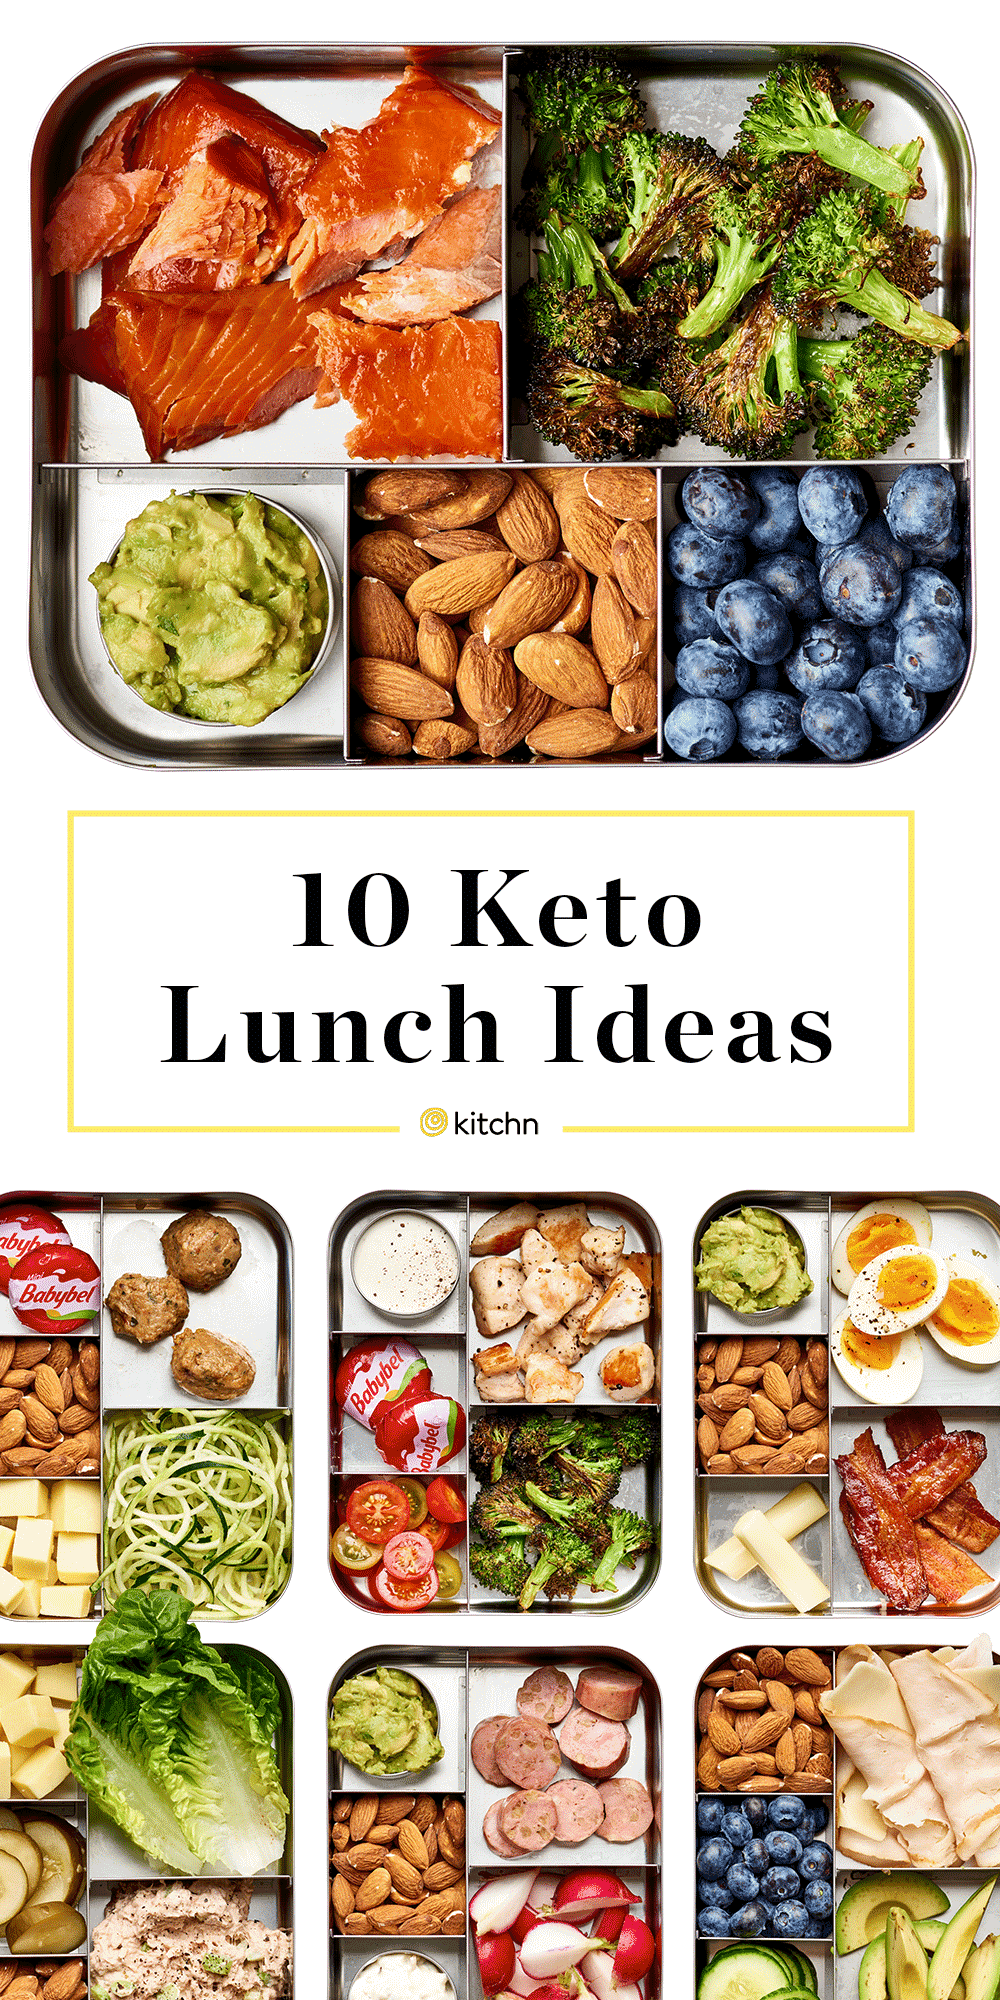 10 Easy Keto Lunch Box Ideas images